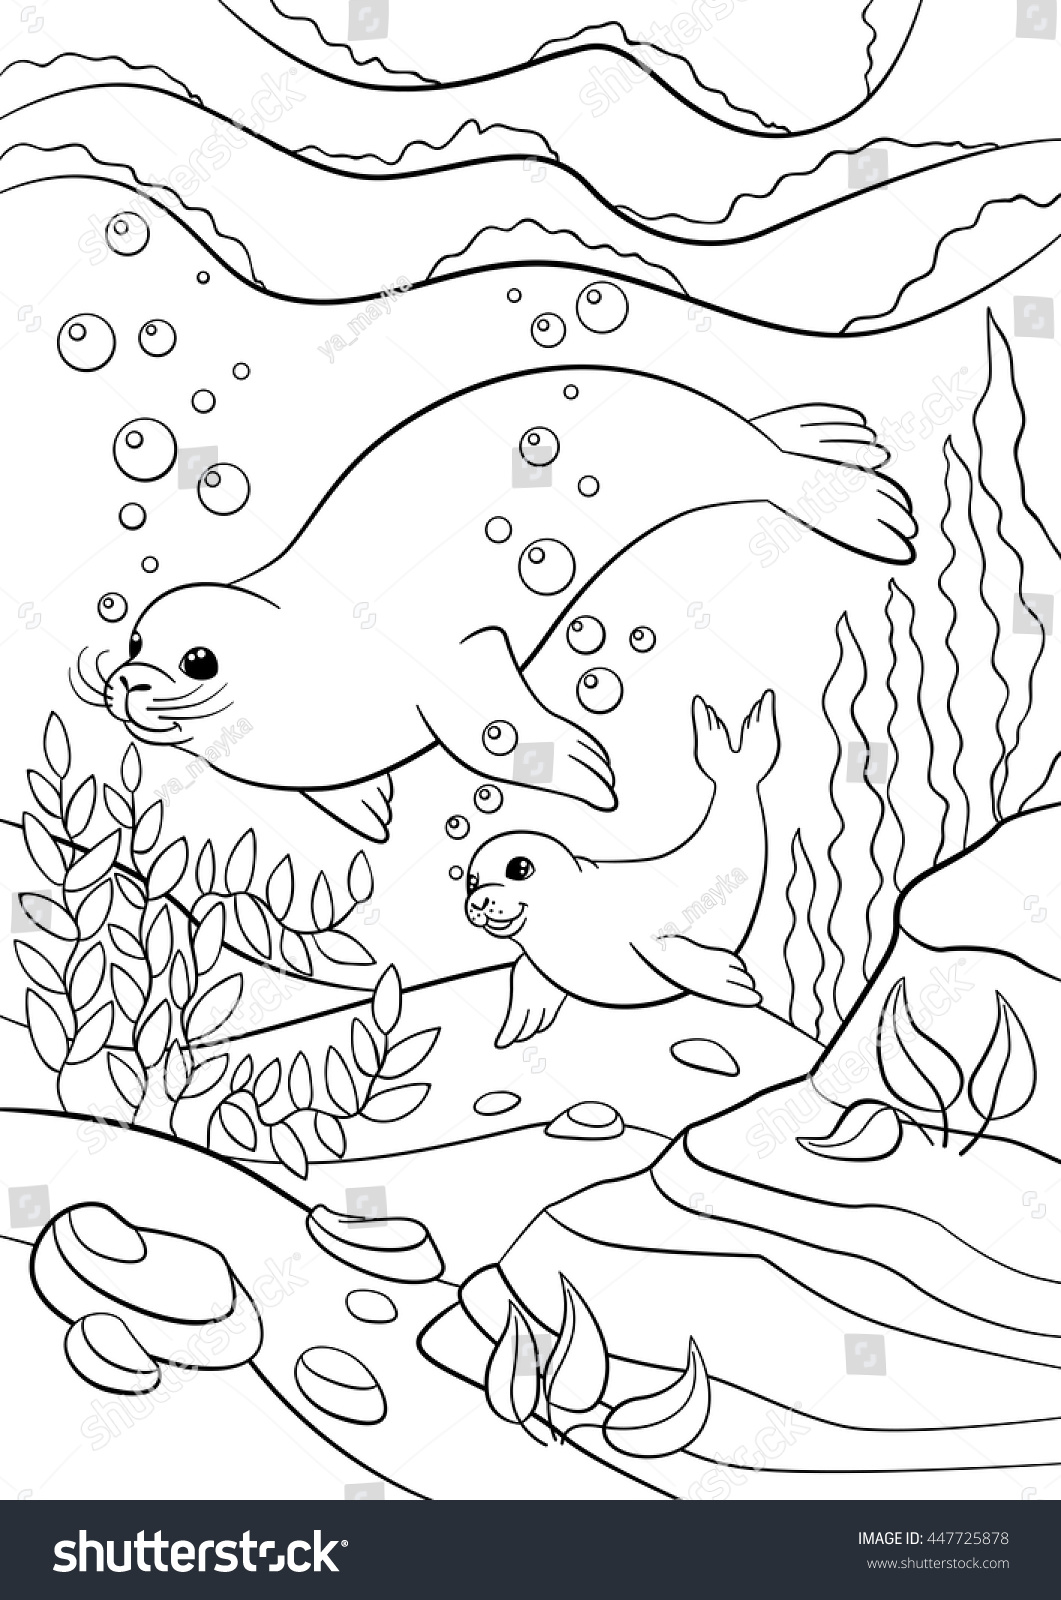 Coloring Pages Mother Seal Her Little Stock Vector ...